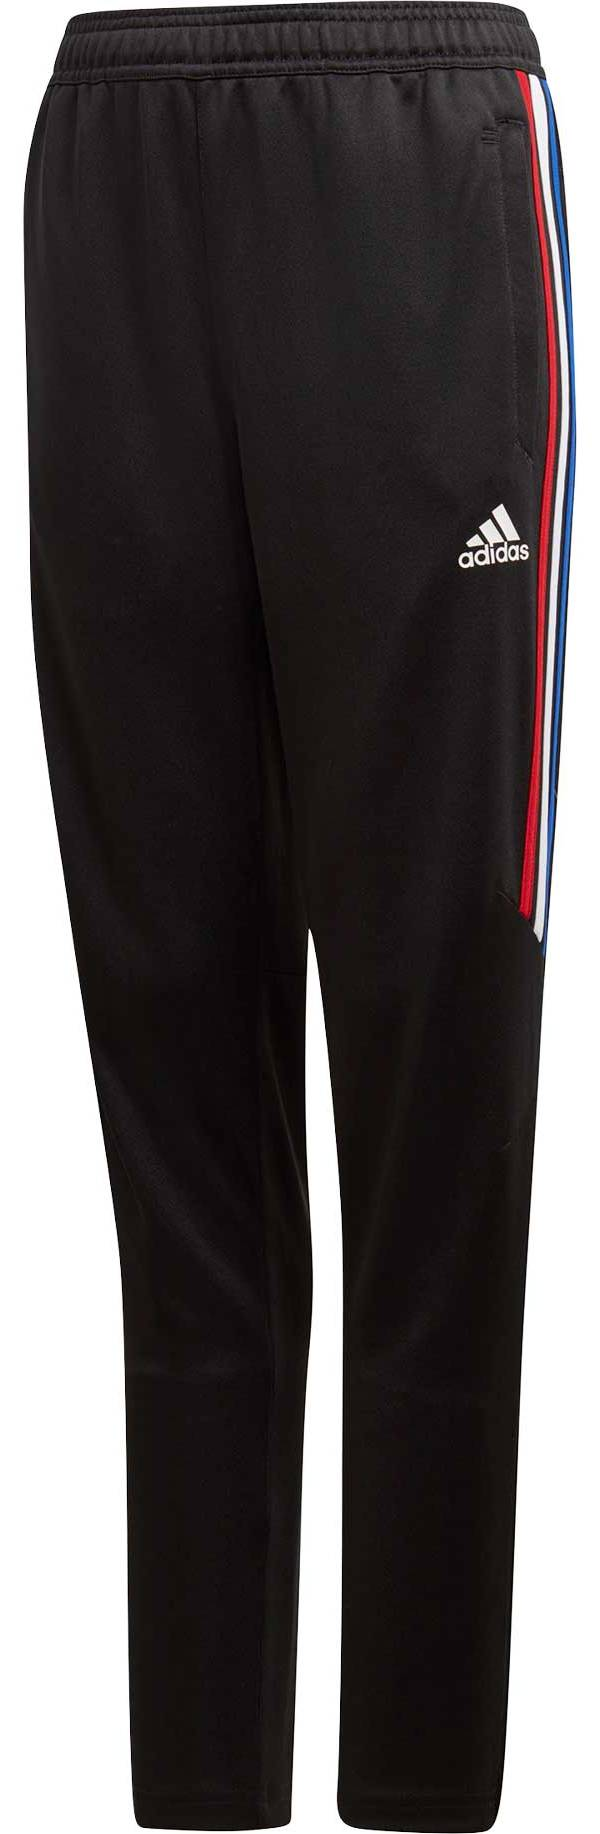 adidas Youth Tiro 17 Red White Blue Training Pants product image